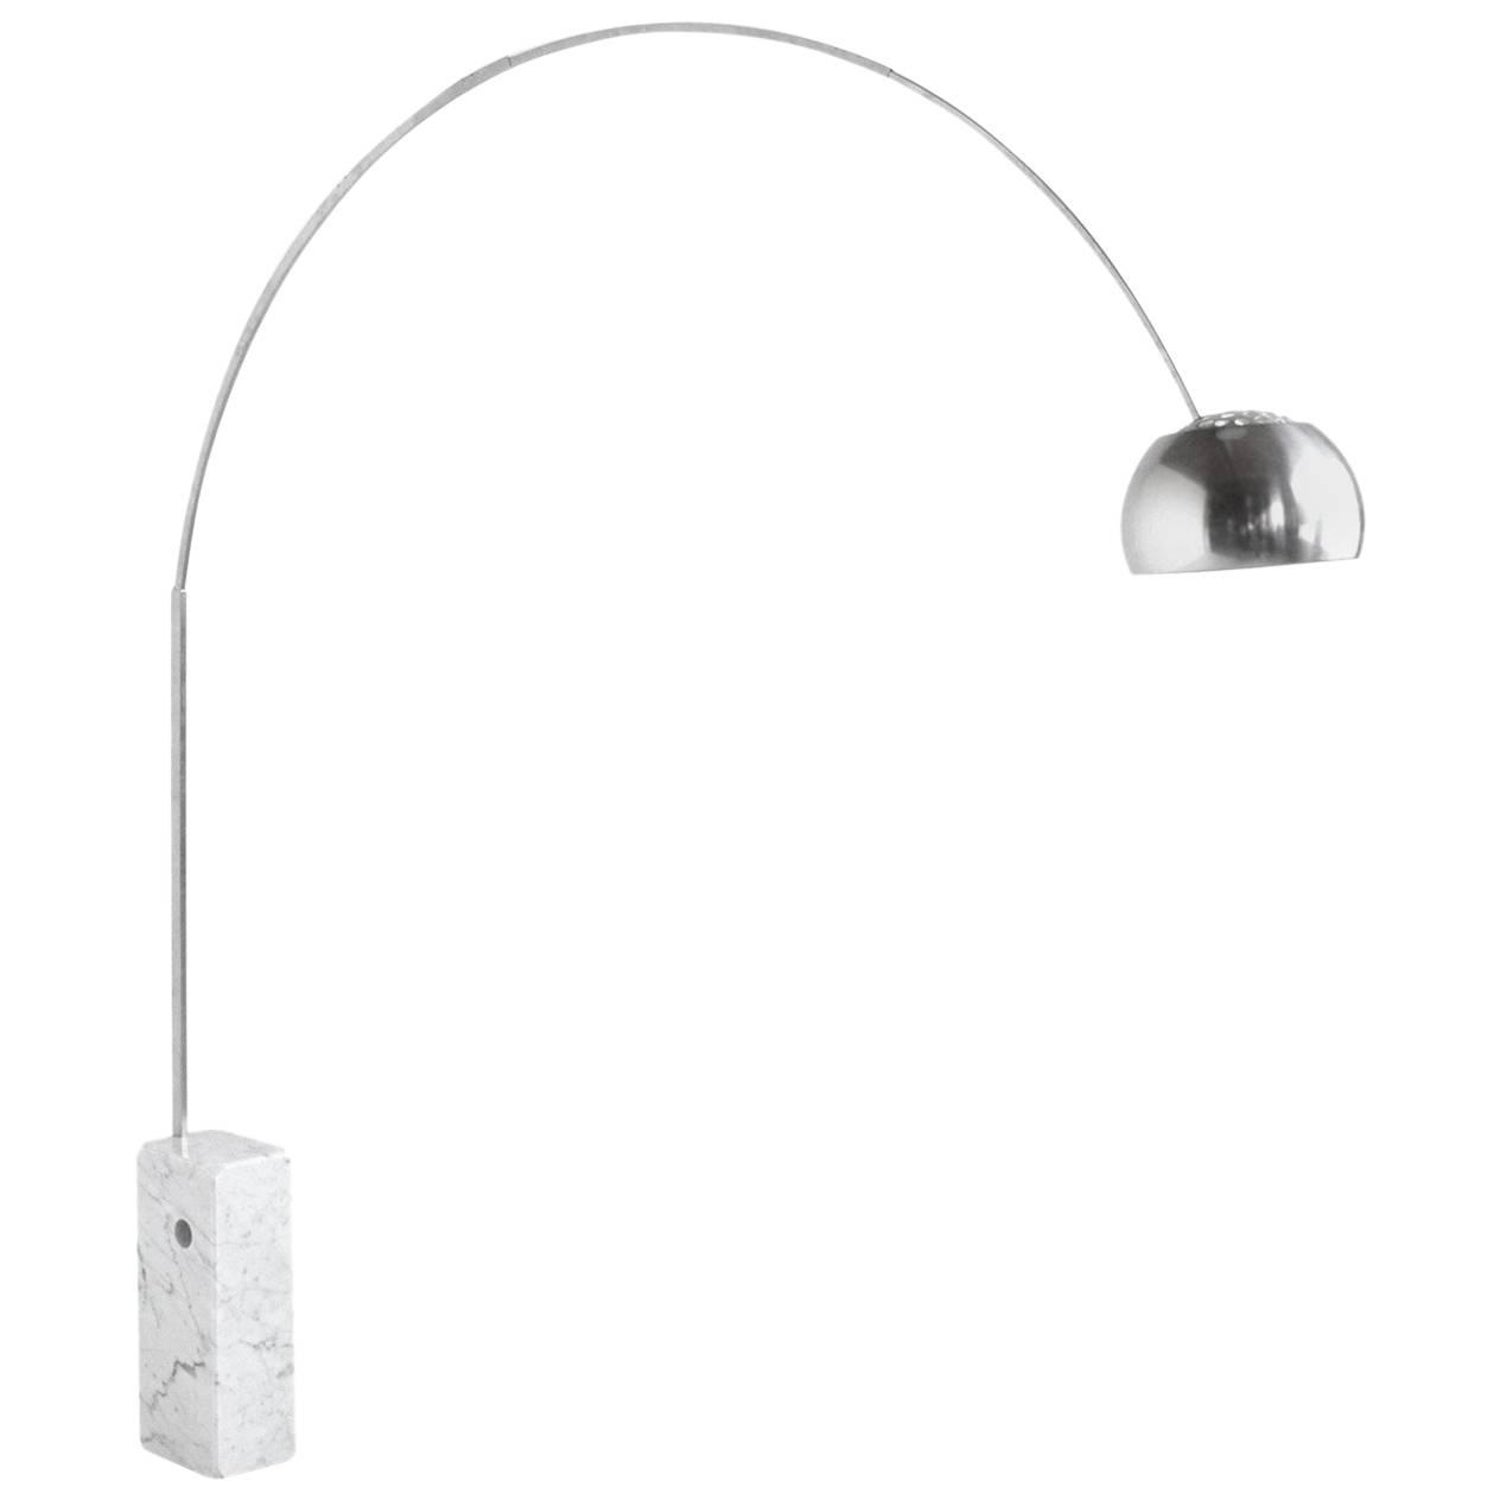 Achille Castiglioni Arco Lamp by Flos For Sale at 1stdibs for Original Arco Lamp  75tgx